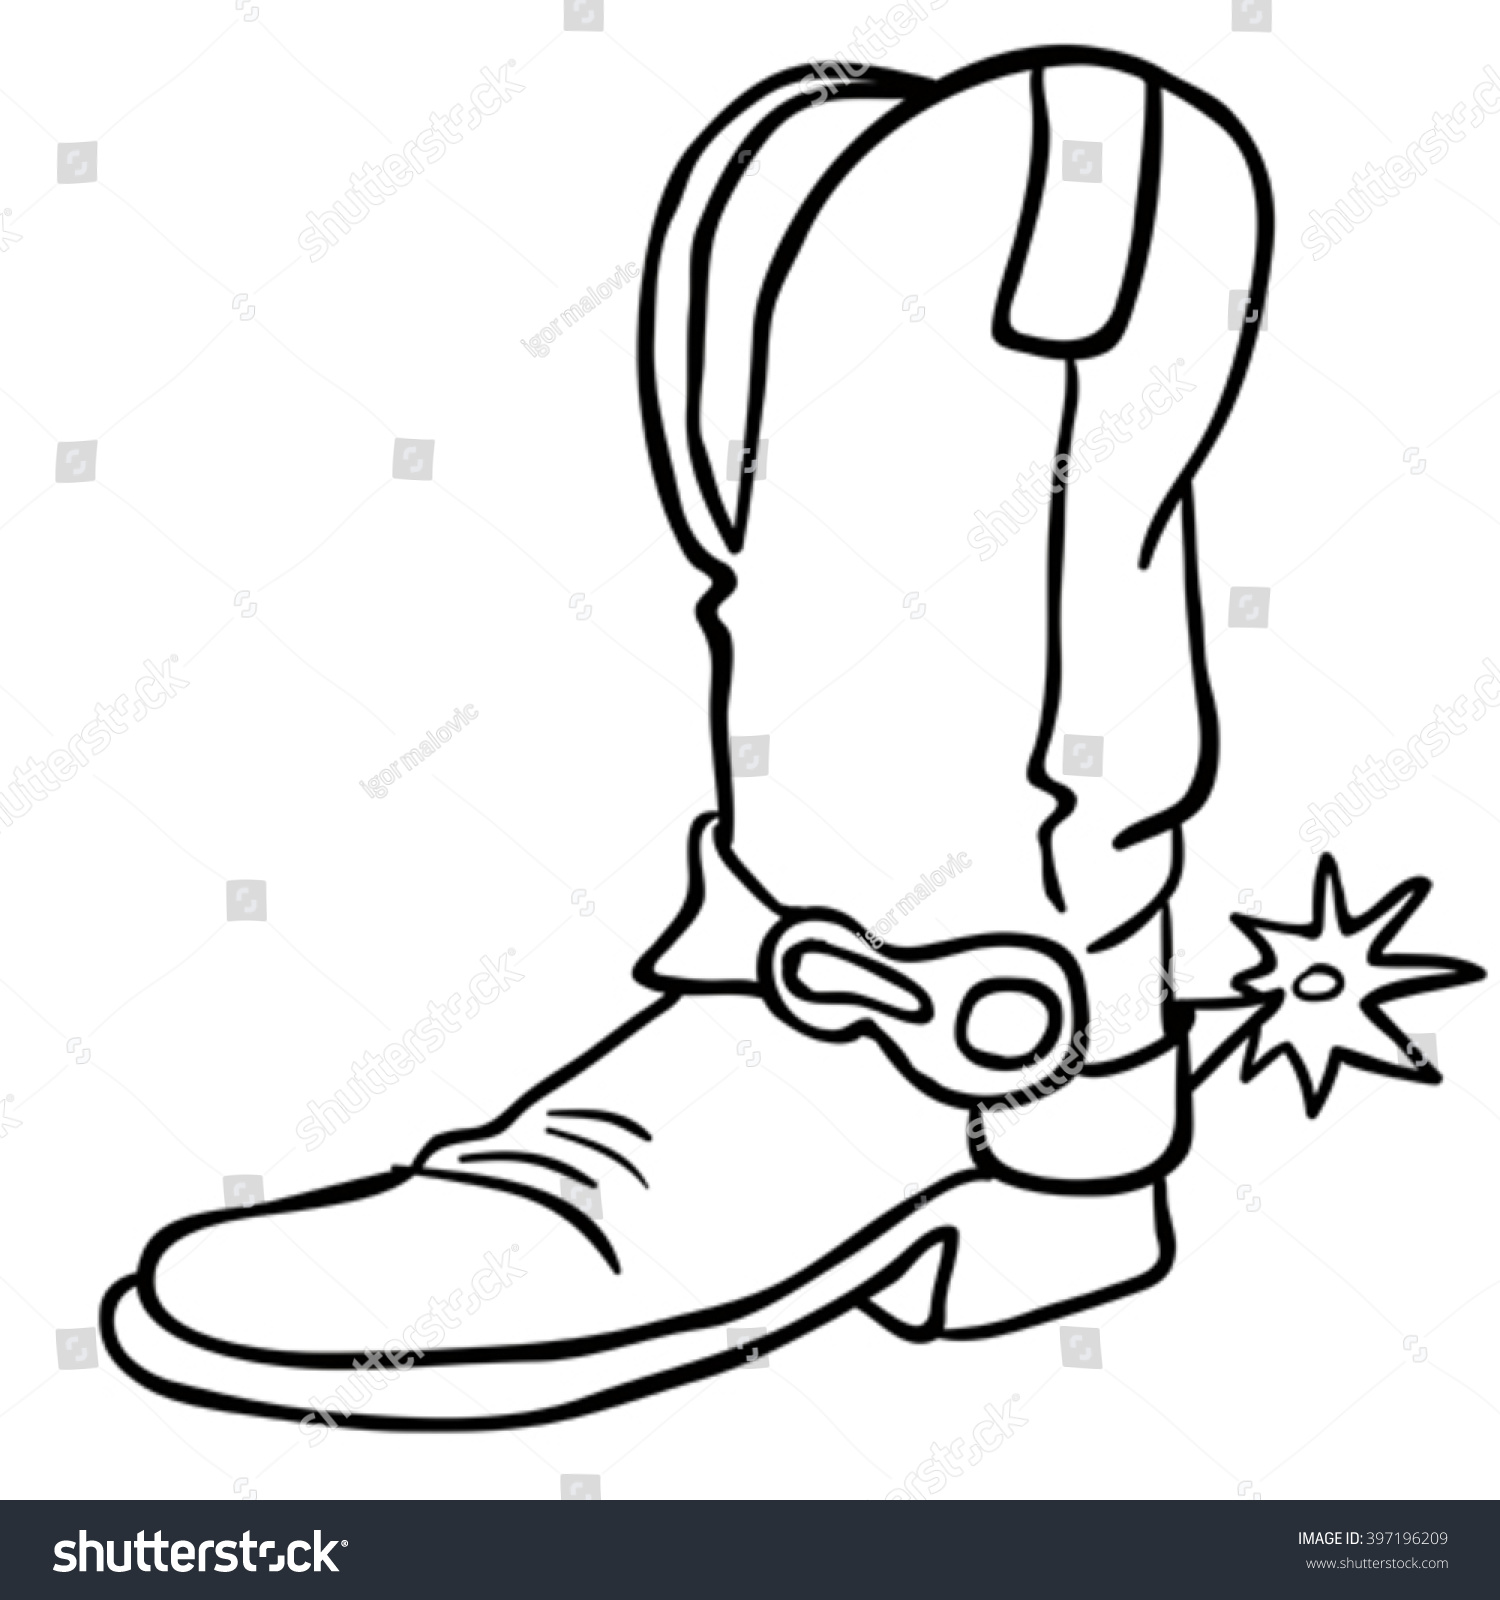 Simple Black White Cowboy Boot Stock Vector 397196209 - Shutterstock